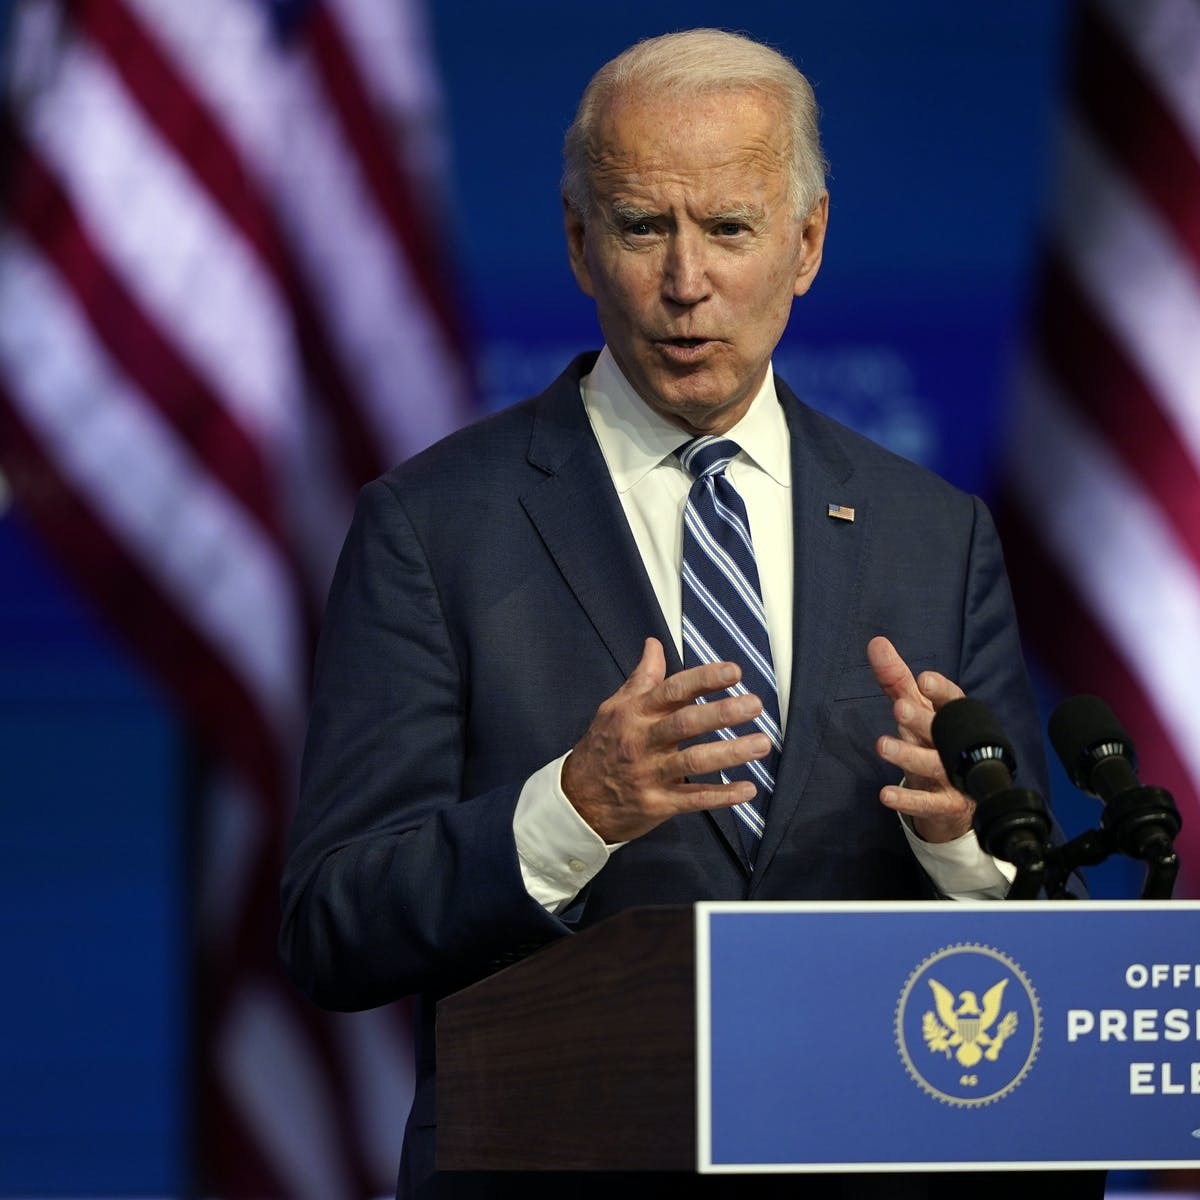 Joe Biden S Empathy May Result In A Therapeutic Foreign Policy